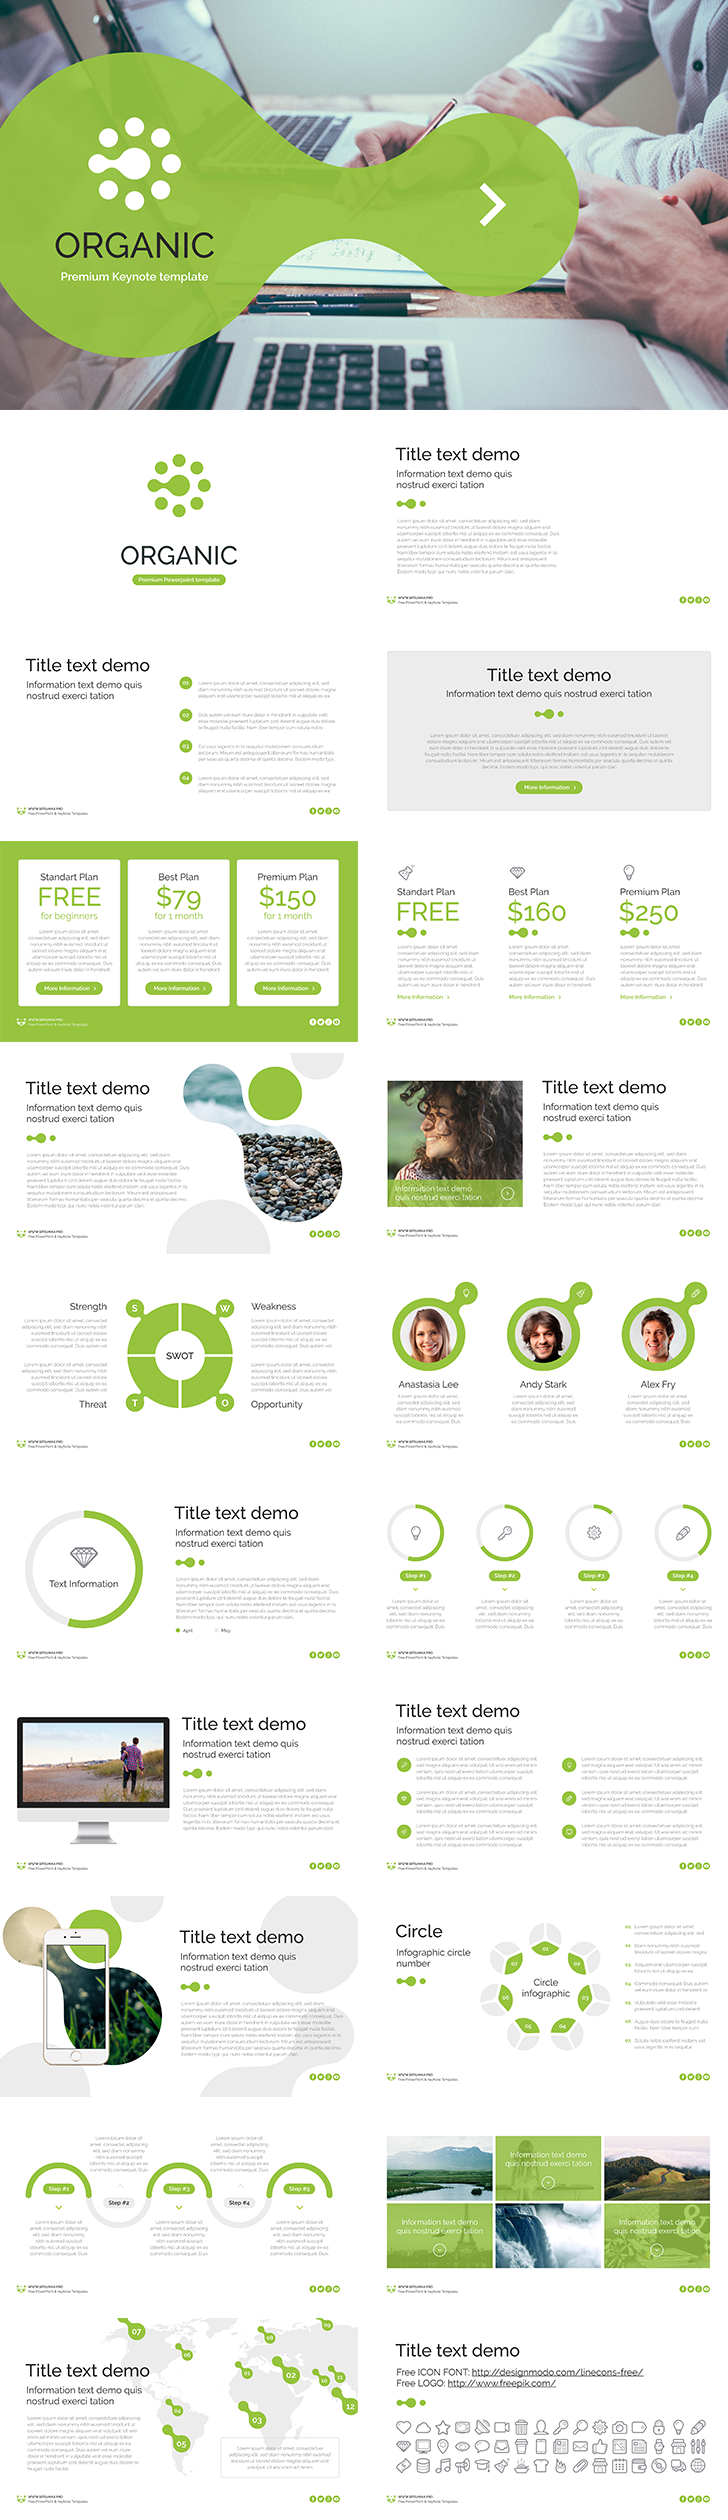 Free keynote template organic free download now for Free keynote template